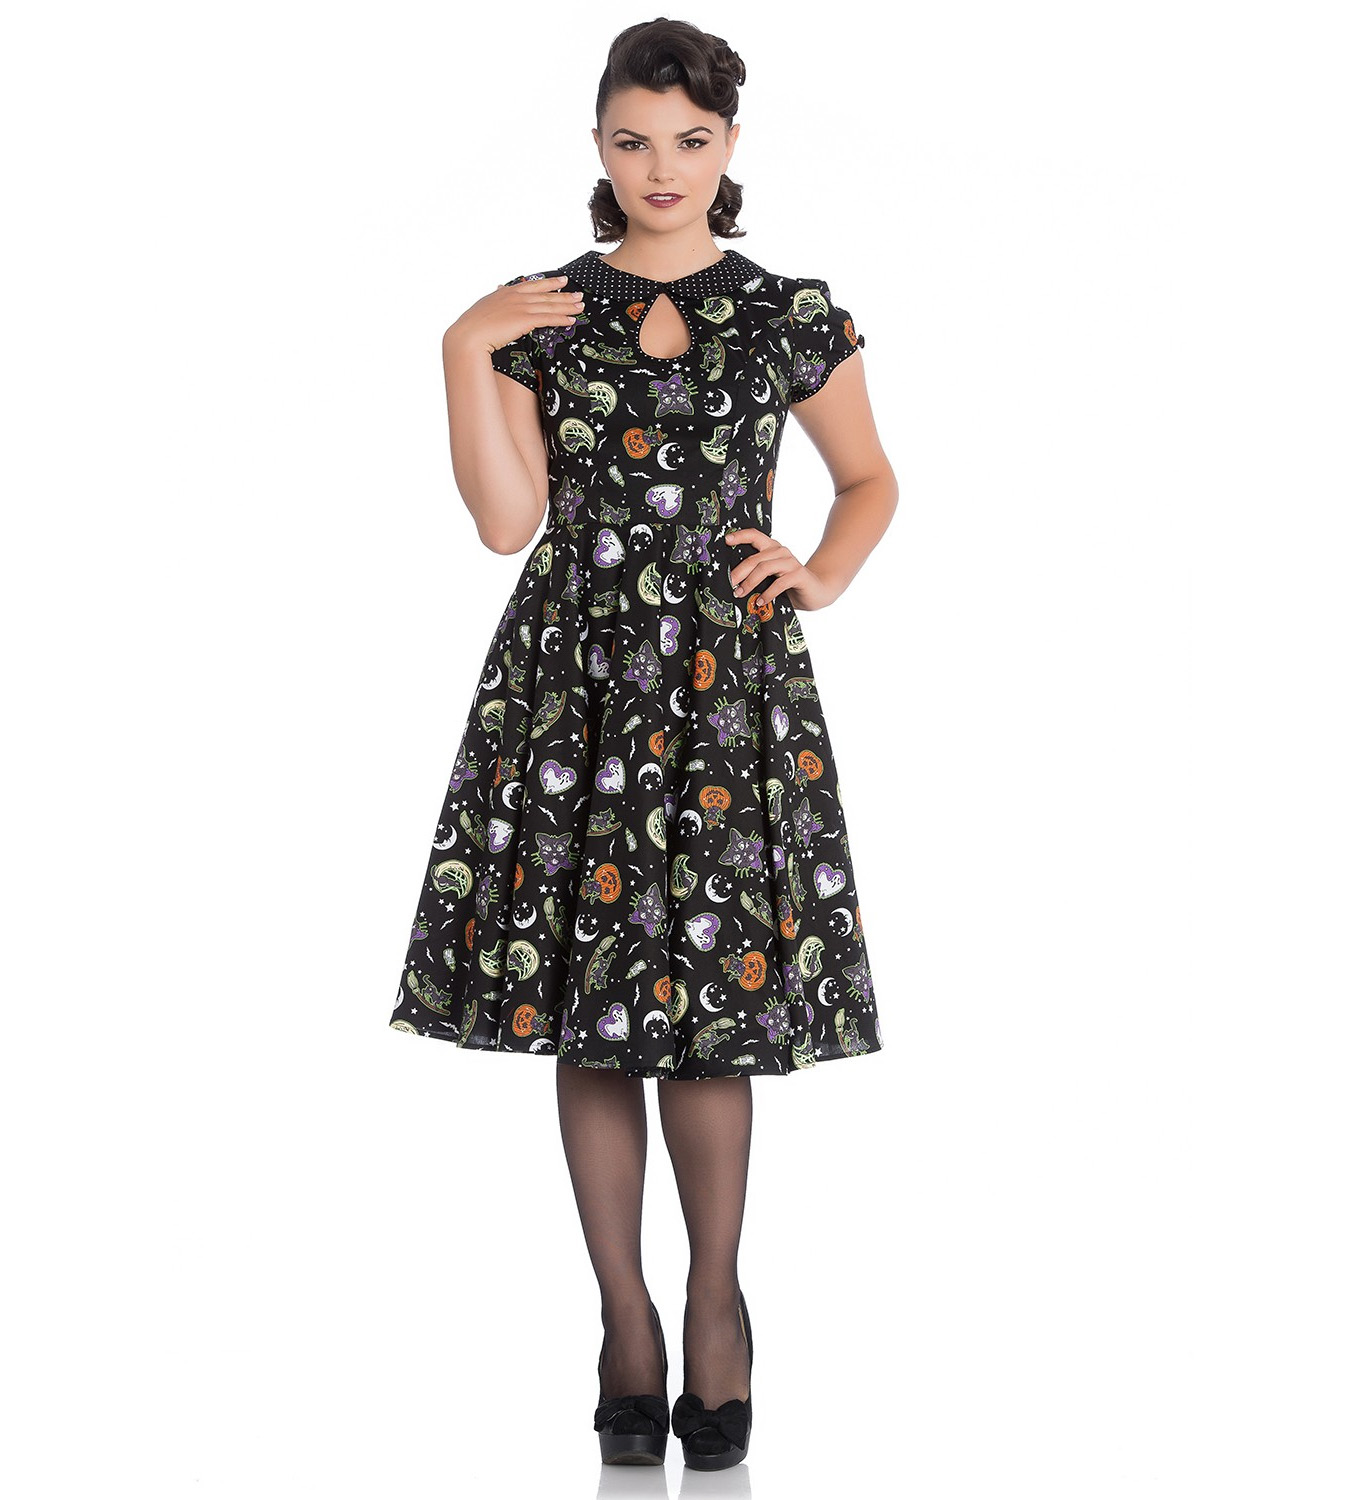 Hell-Bunny-50s-Black-Pin-Up-Dress-Horror-Witchy-SALEM-Halloween-All-Sizes thumbnail 15